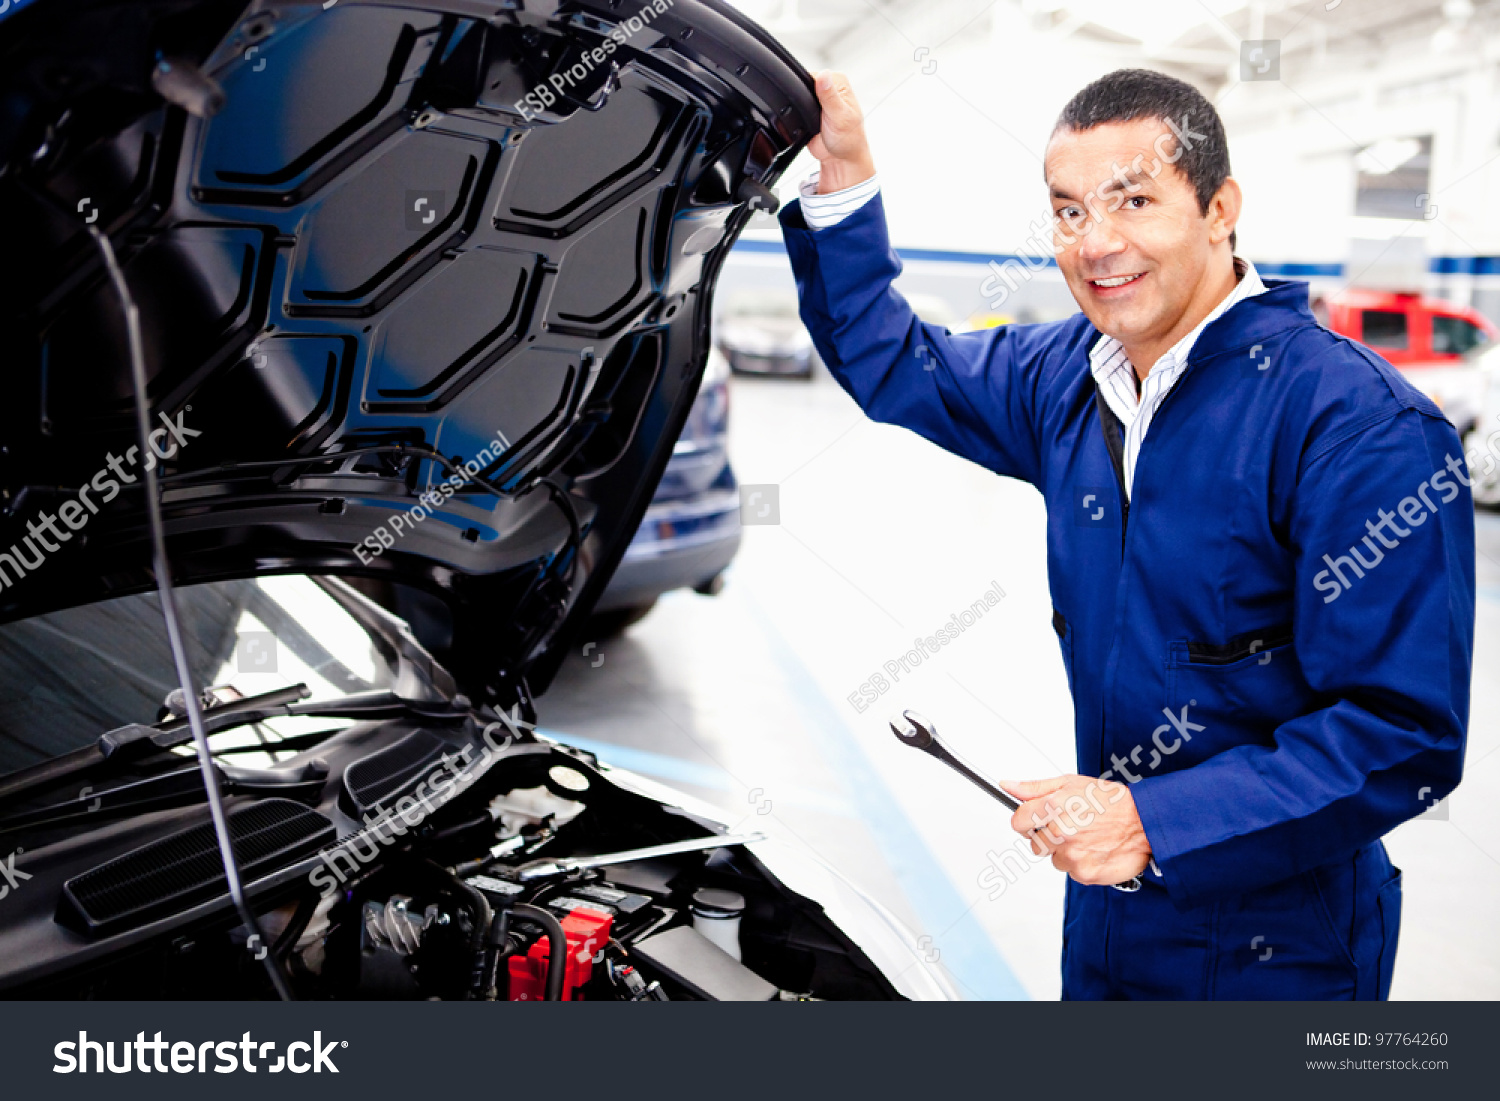 Car Mechanic Working On An Engine At The Repair Shop Stock Photo ...